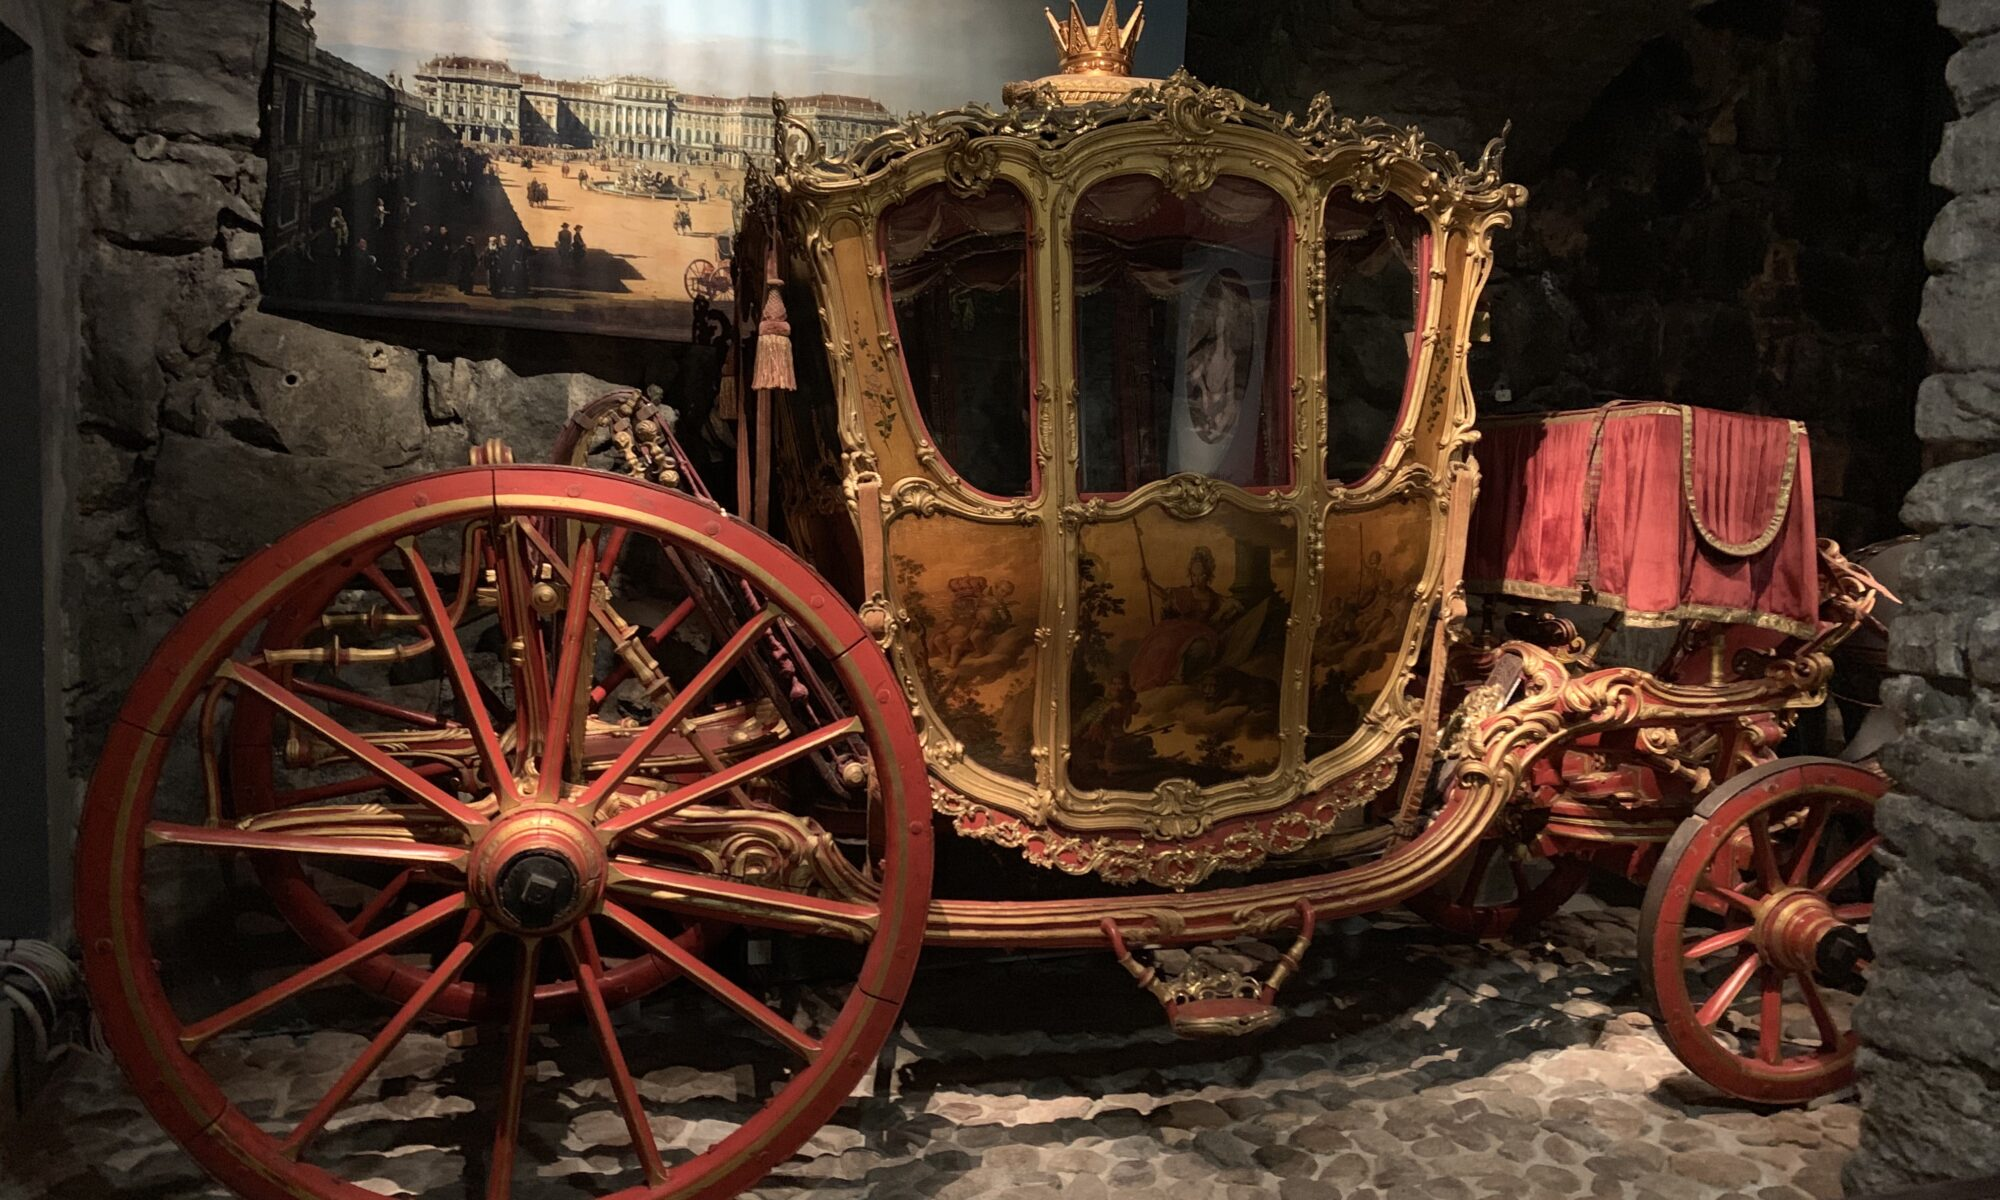 Carriage in the Royal Armory Museum in Stockholm, Sweden